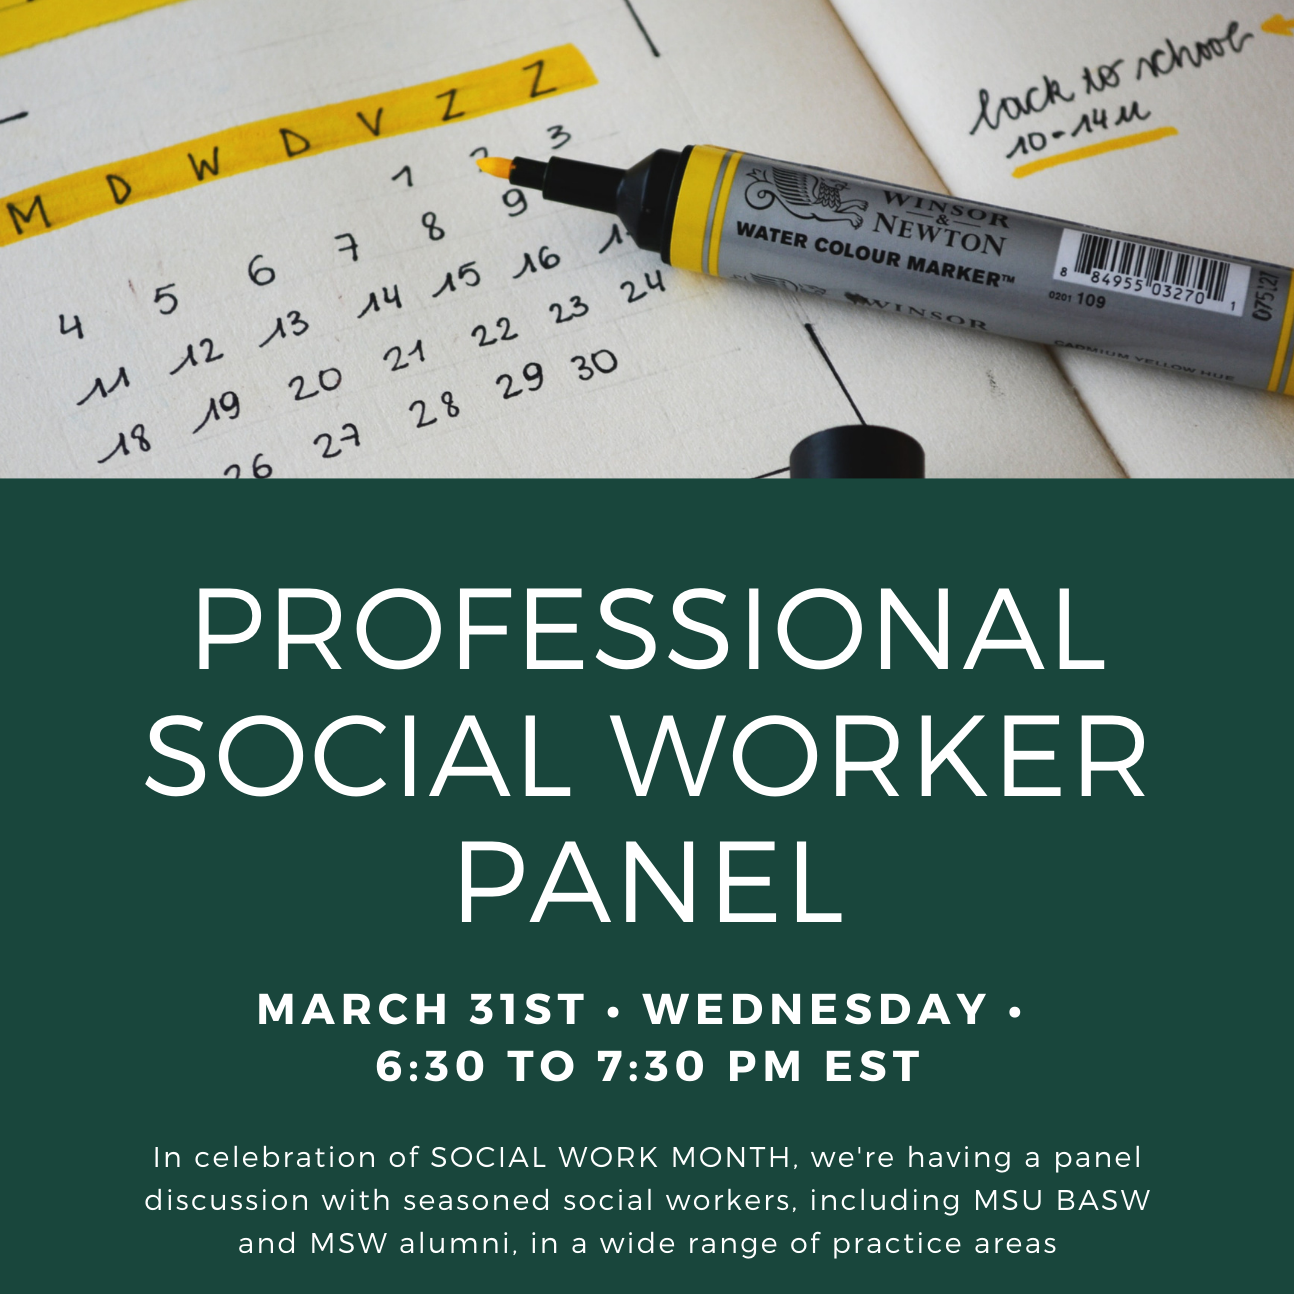 Professional Social Worker Panel